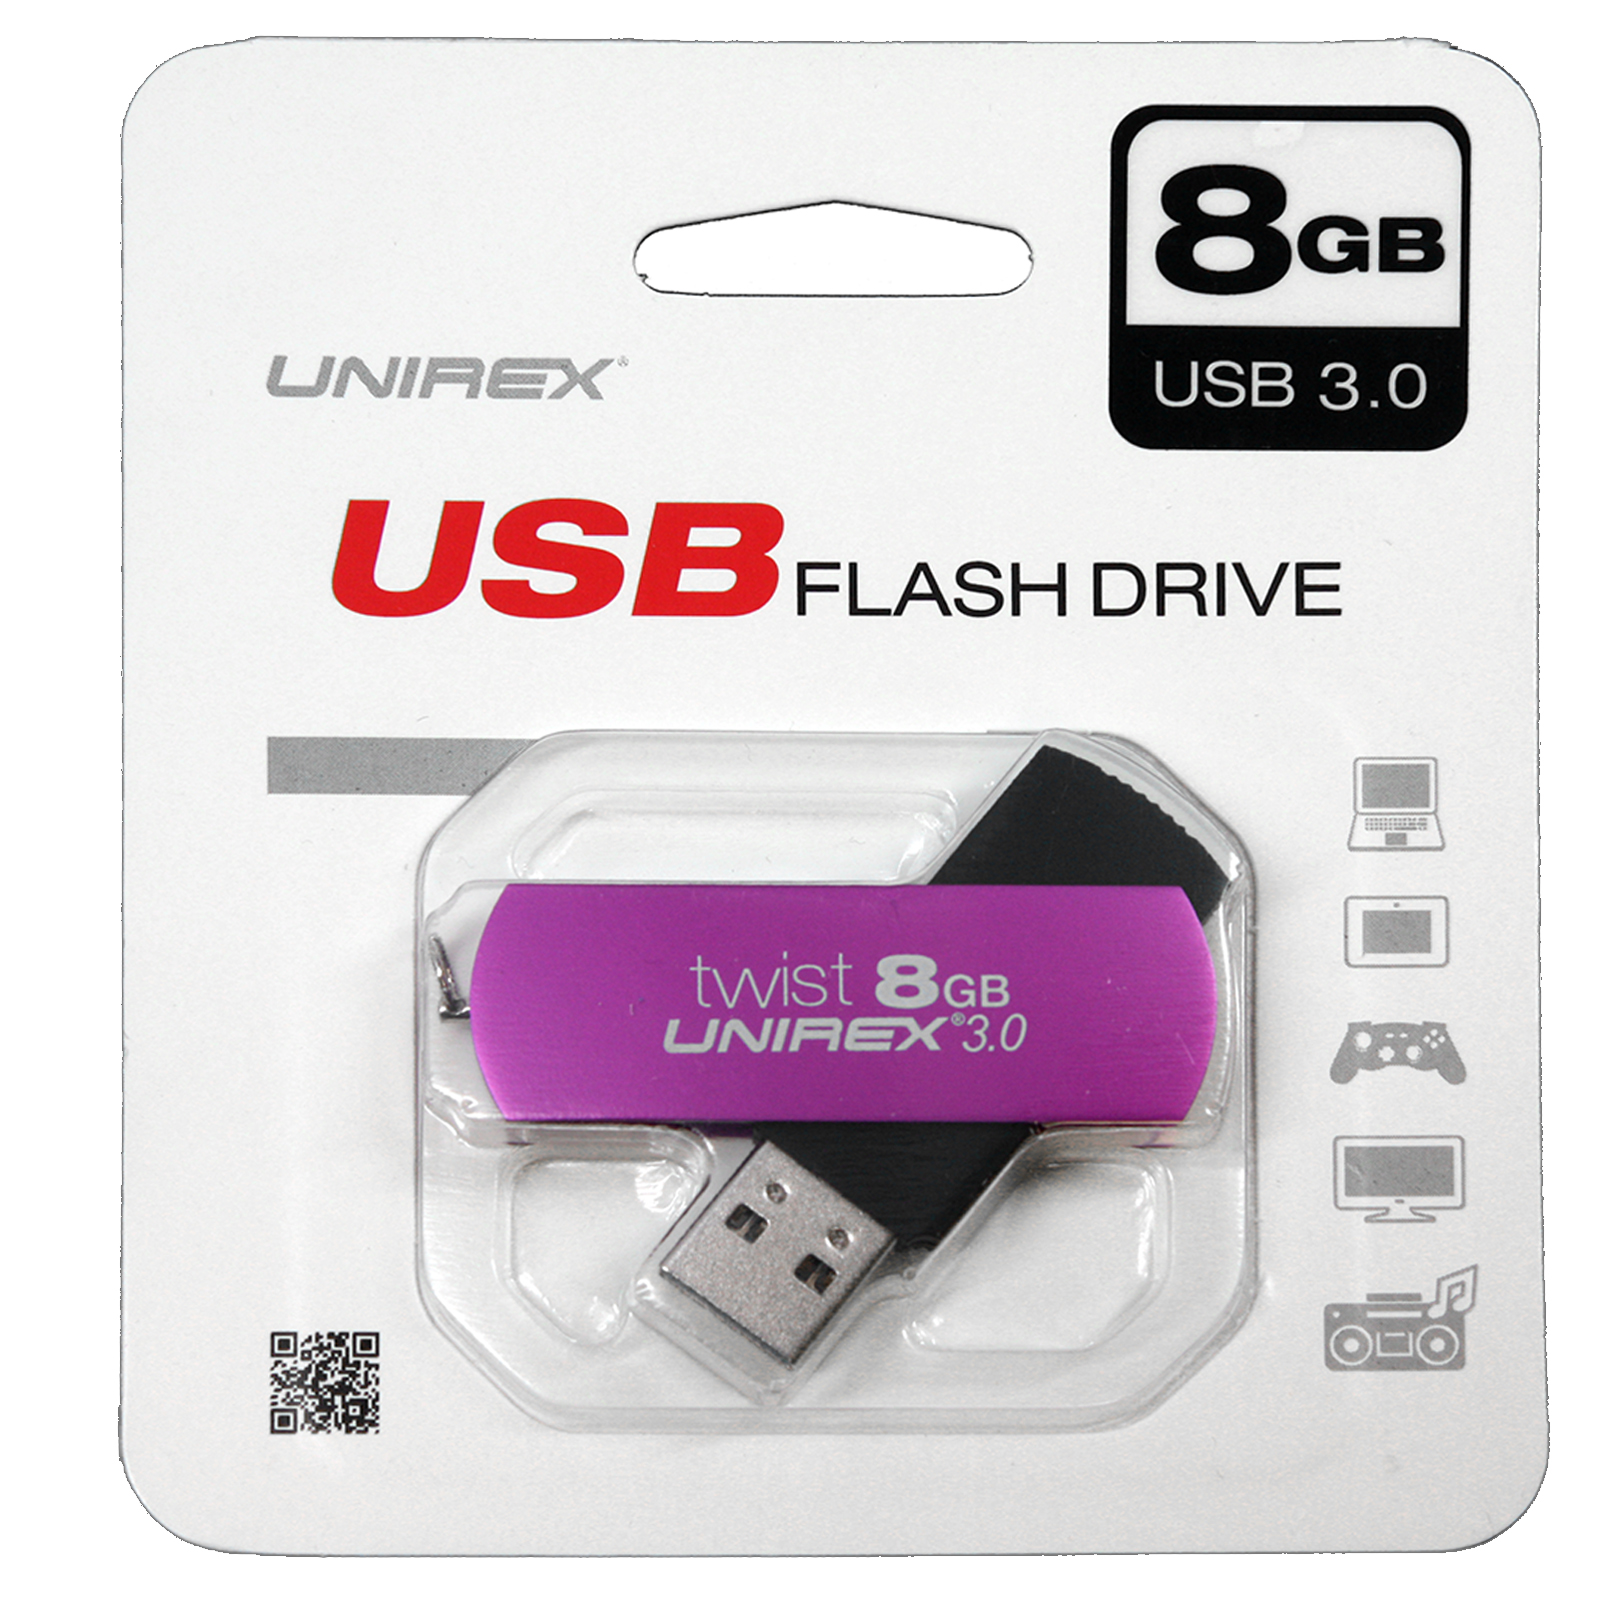 Unirex USB 2.0 8GB Flash Drive-Purple